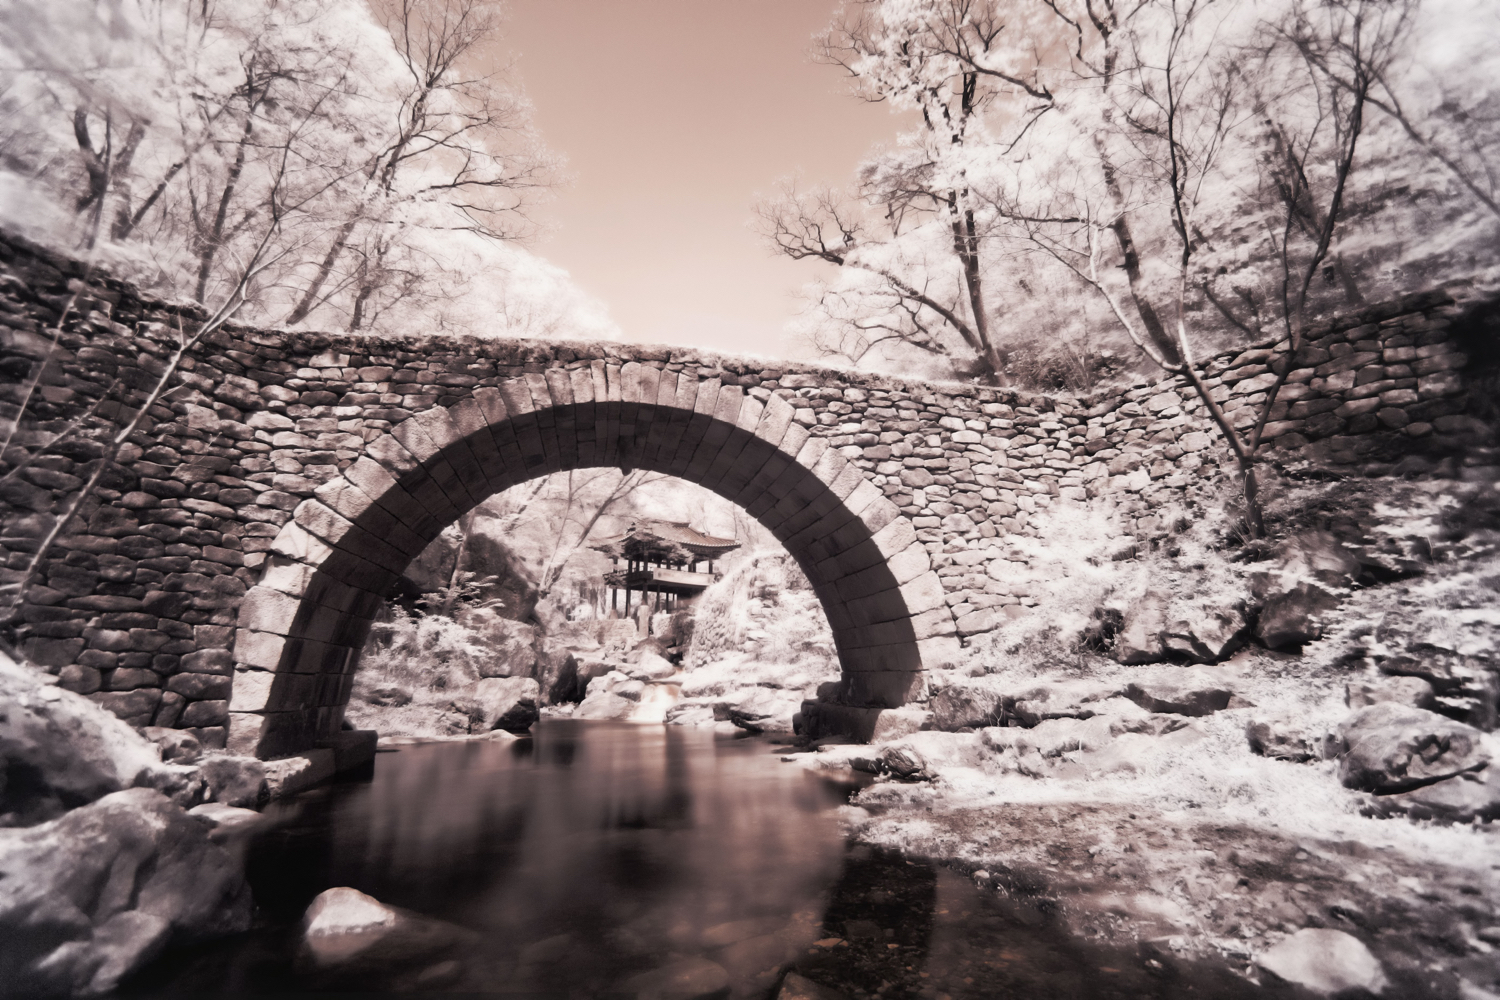 Image: Infra-red photography can create interesting scenes on a sunny day.